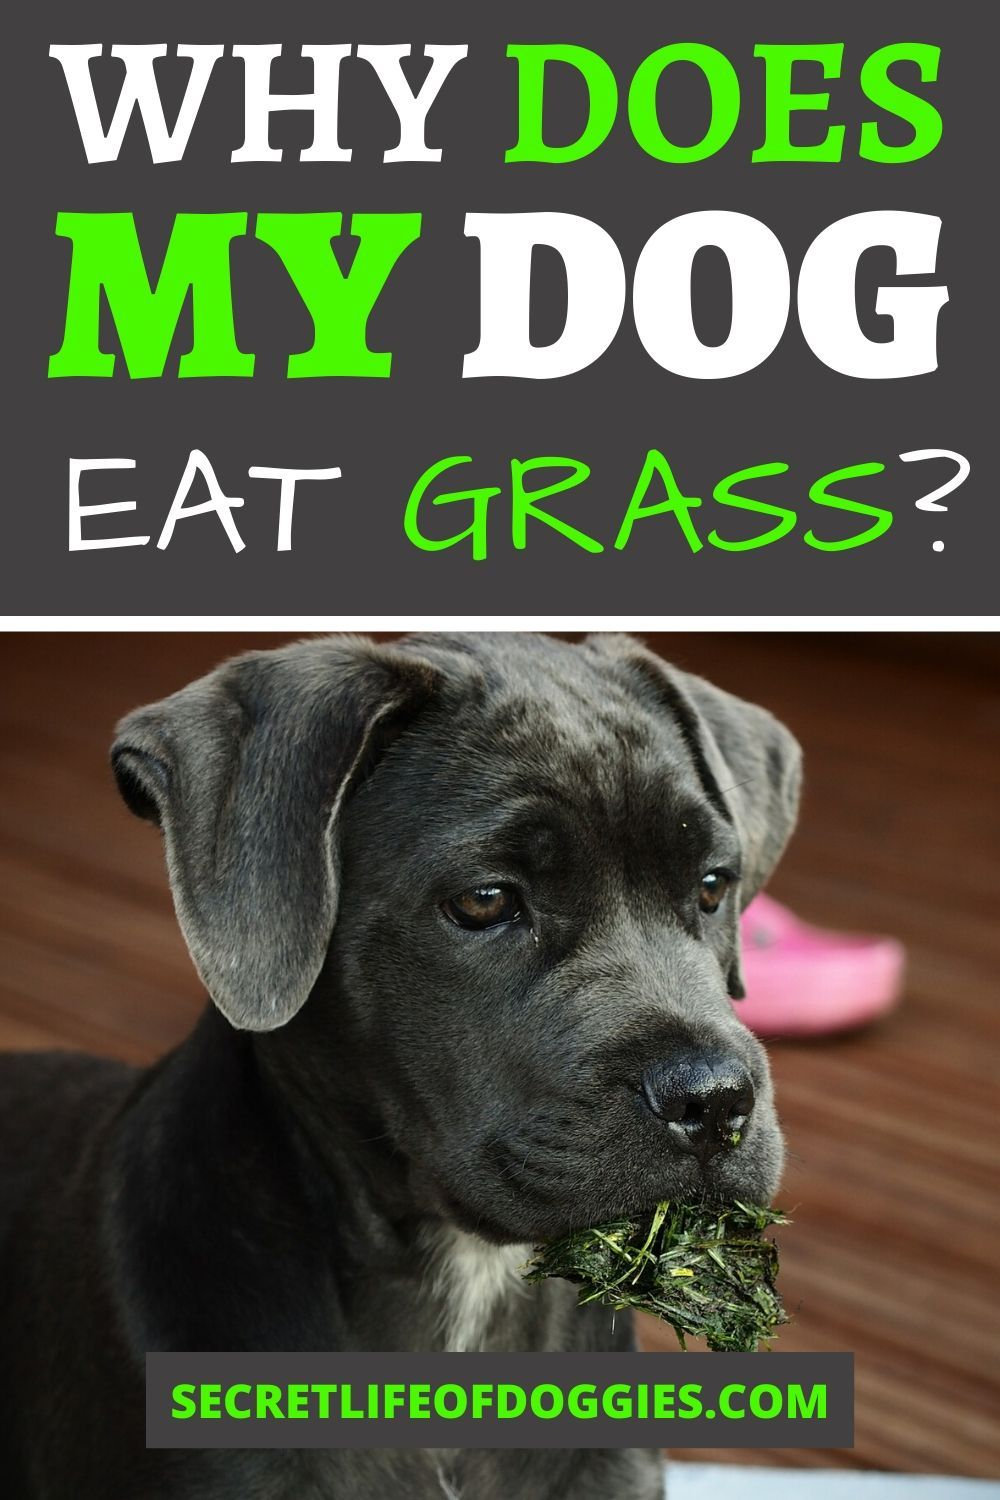 Dogs Love To Roll Over And Play On A Vast Green Yard But